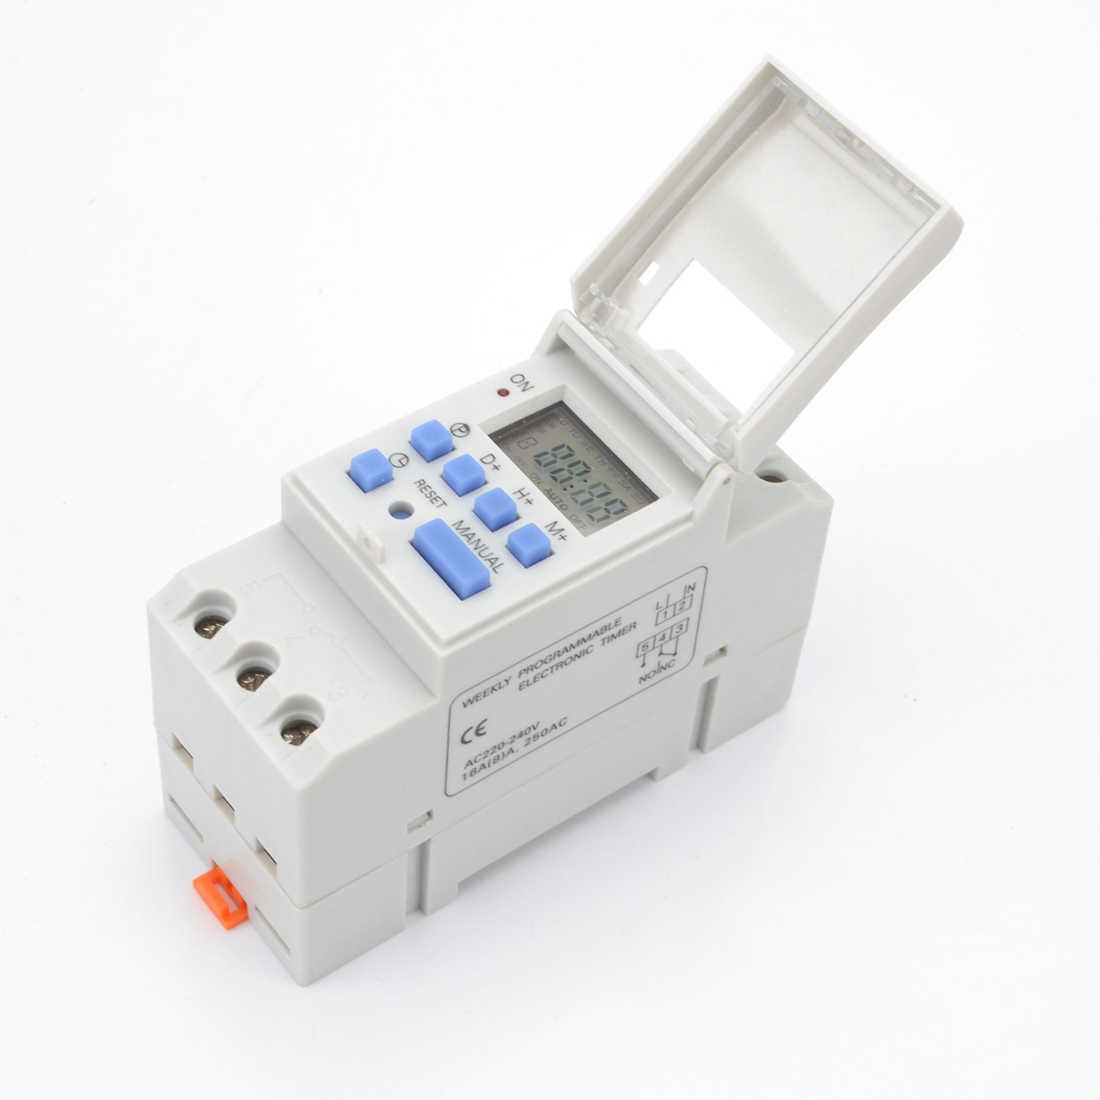 Digital LCD Power Timer Electronic Weekly 7 Days Programmable Digital Timer Switch Relay Control 220-230V 6-30A electronic light switch weekly programmable timer digital switch relay timer controller for controlling road lamp neon light